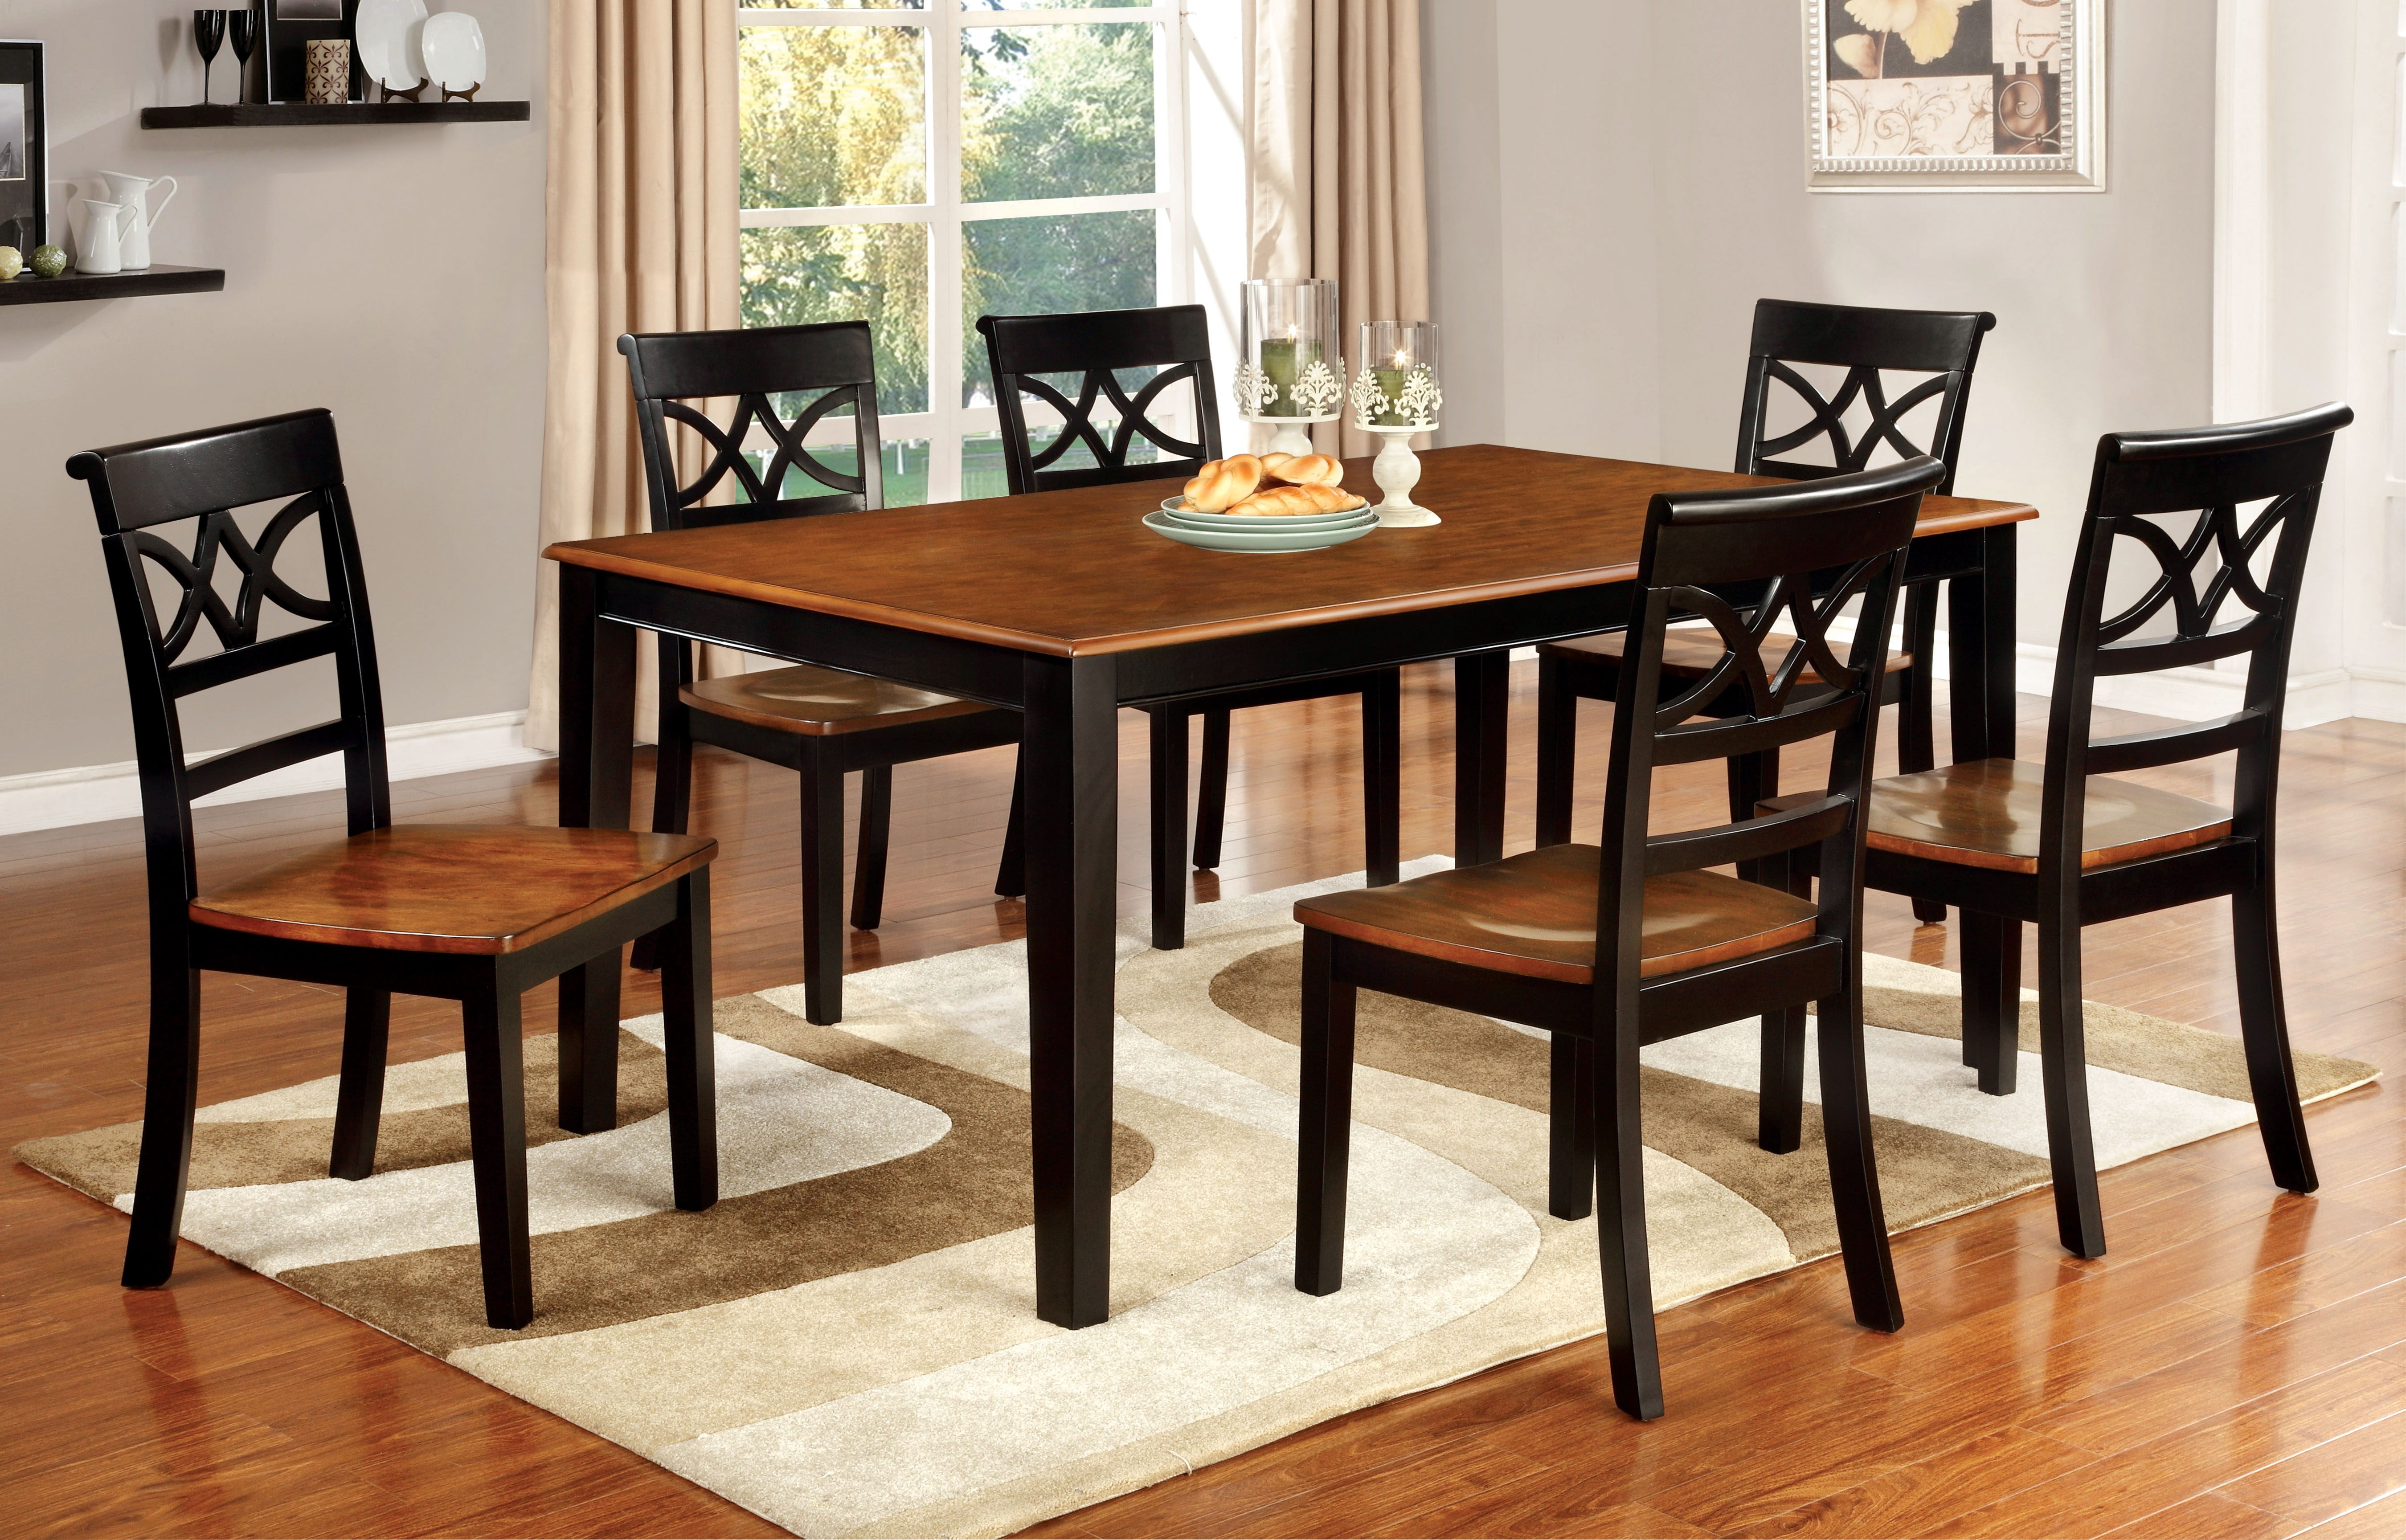 Furniture Of America Two Tone Adelle Country Style Dining Table